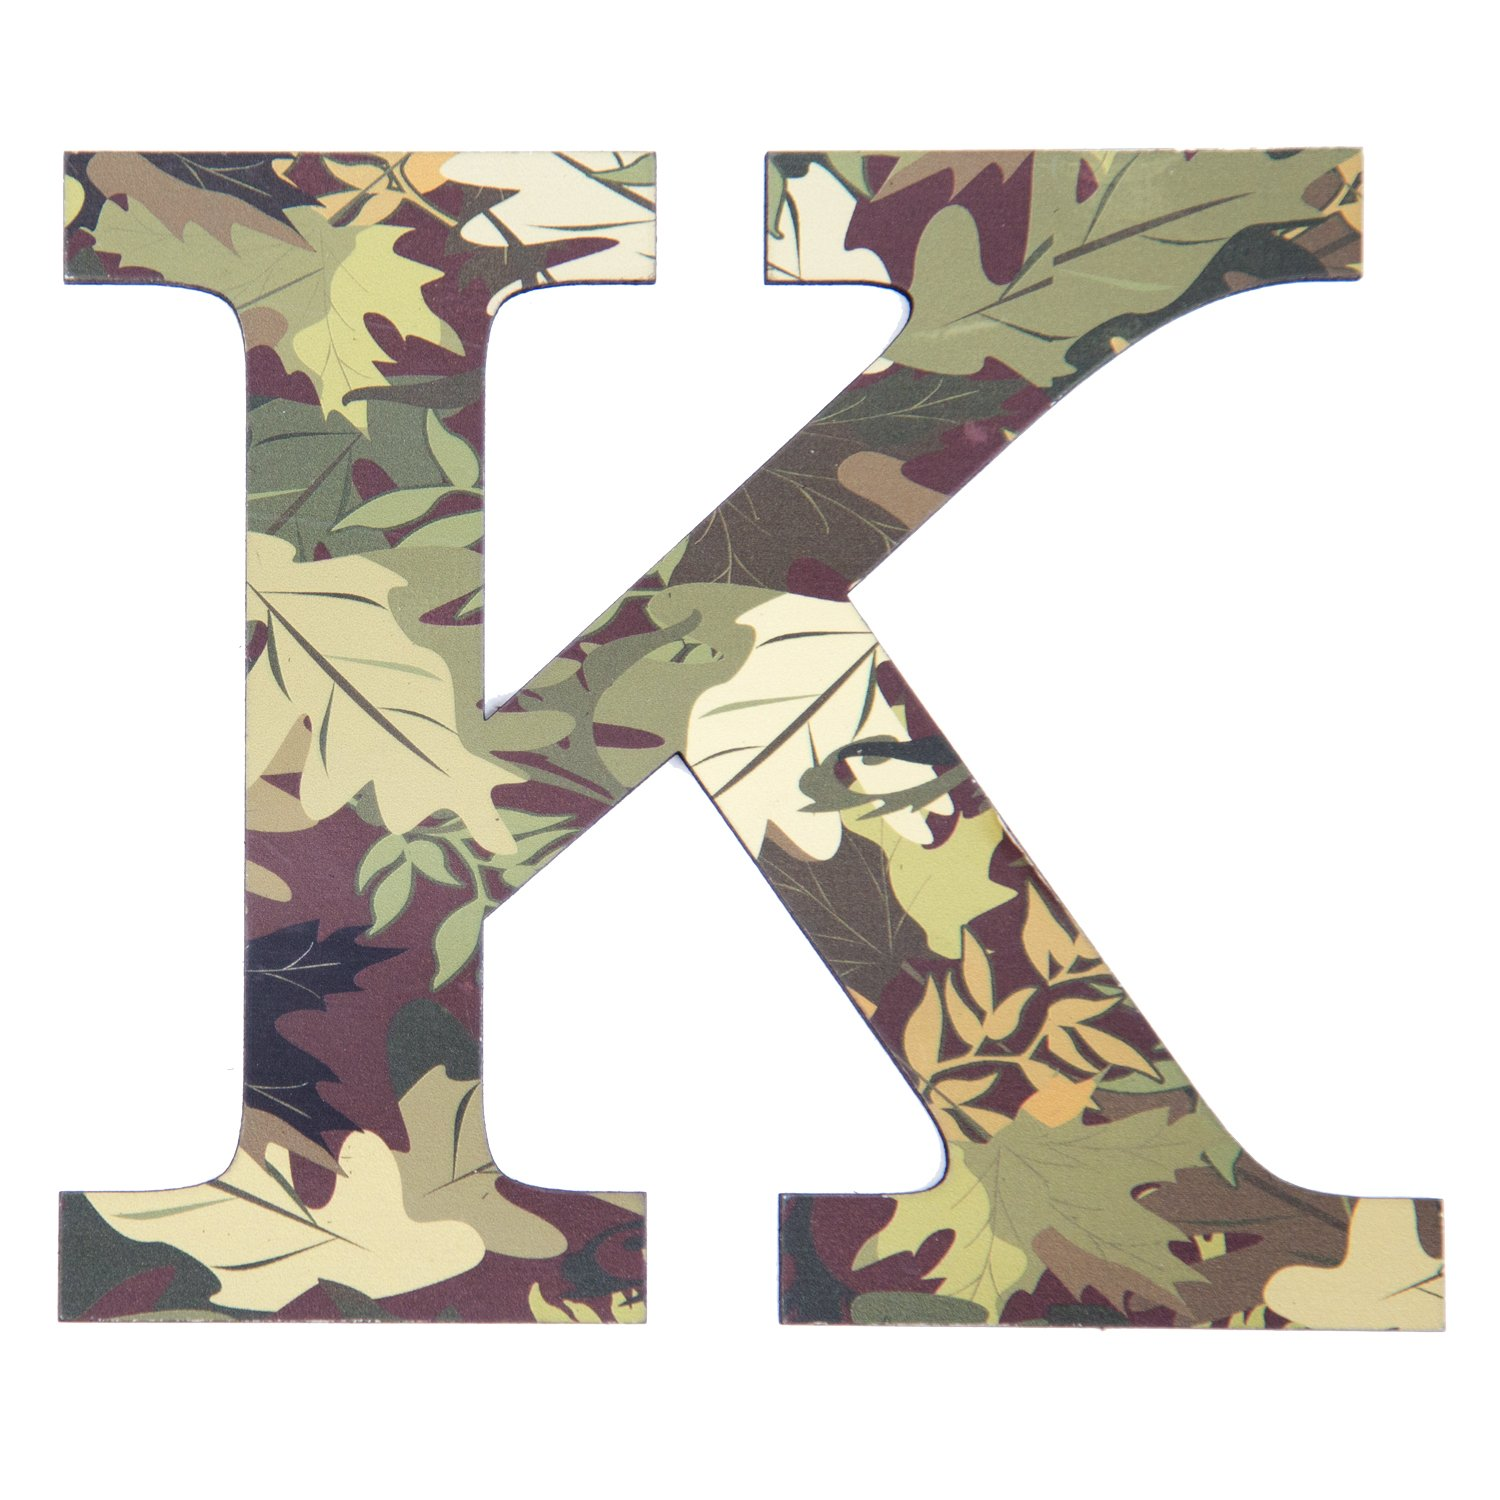 Amazon Com 11 Tall Mossy Oak Designer Camo Wall Letter K Camo Pattern 3d Wall Decor Unique Wall Initial For Living Room Bedroom Man Cave Boys Room Girls